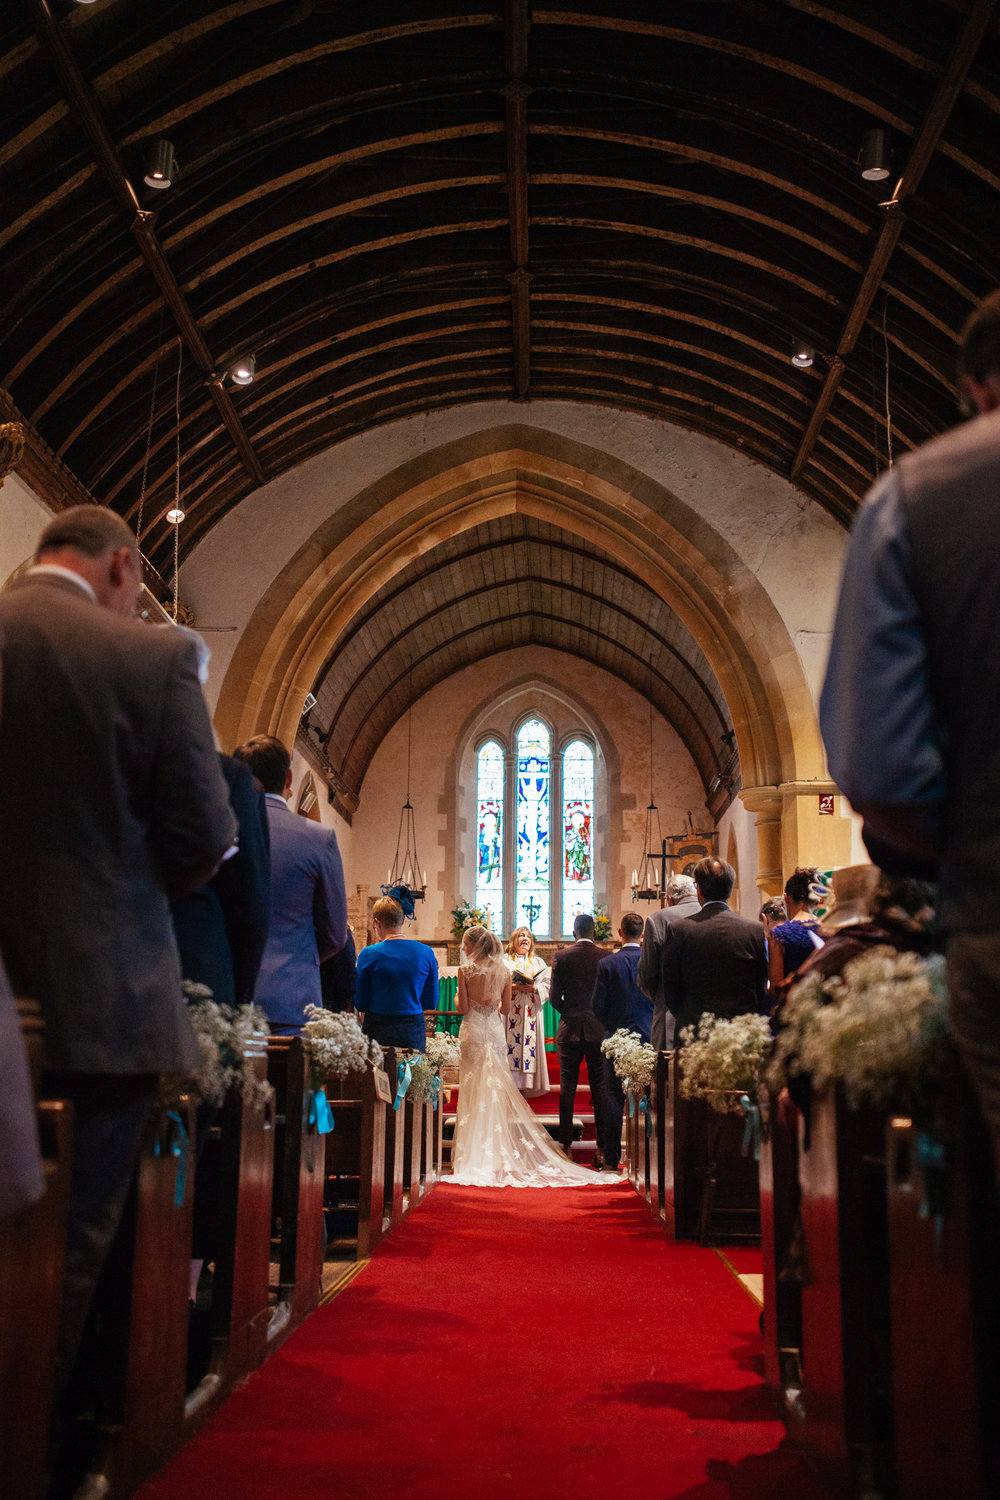 Simon_Rawling_Wedding_Photography-160.jpg